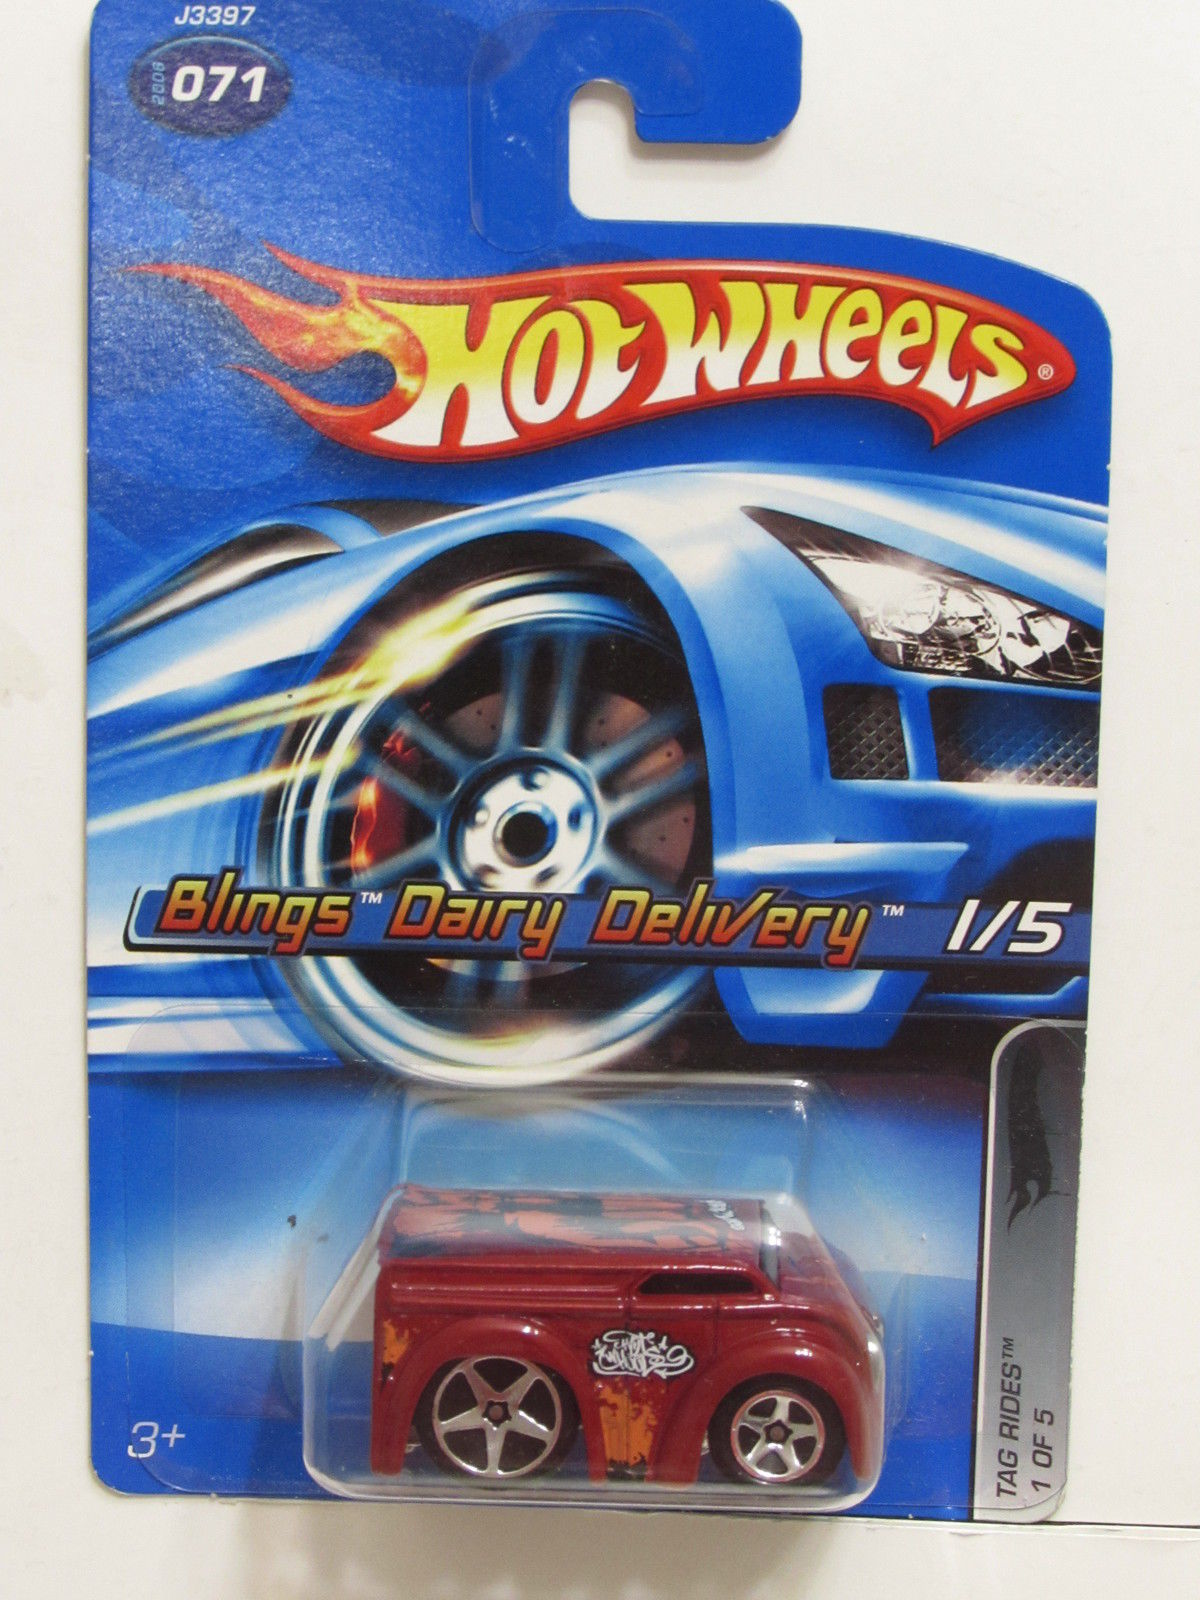 HOT WHEELS 2006 TAG RIDES BLINGS DAIRY DELIVERY #071